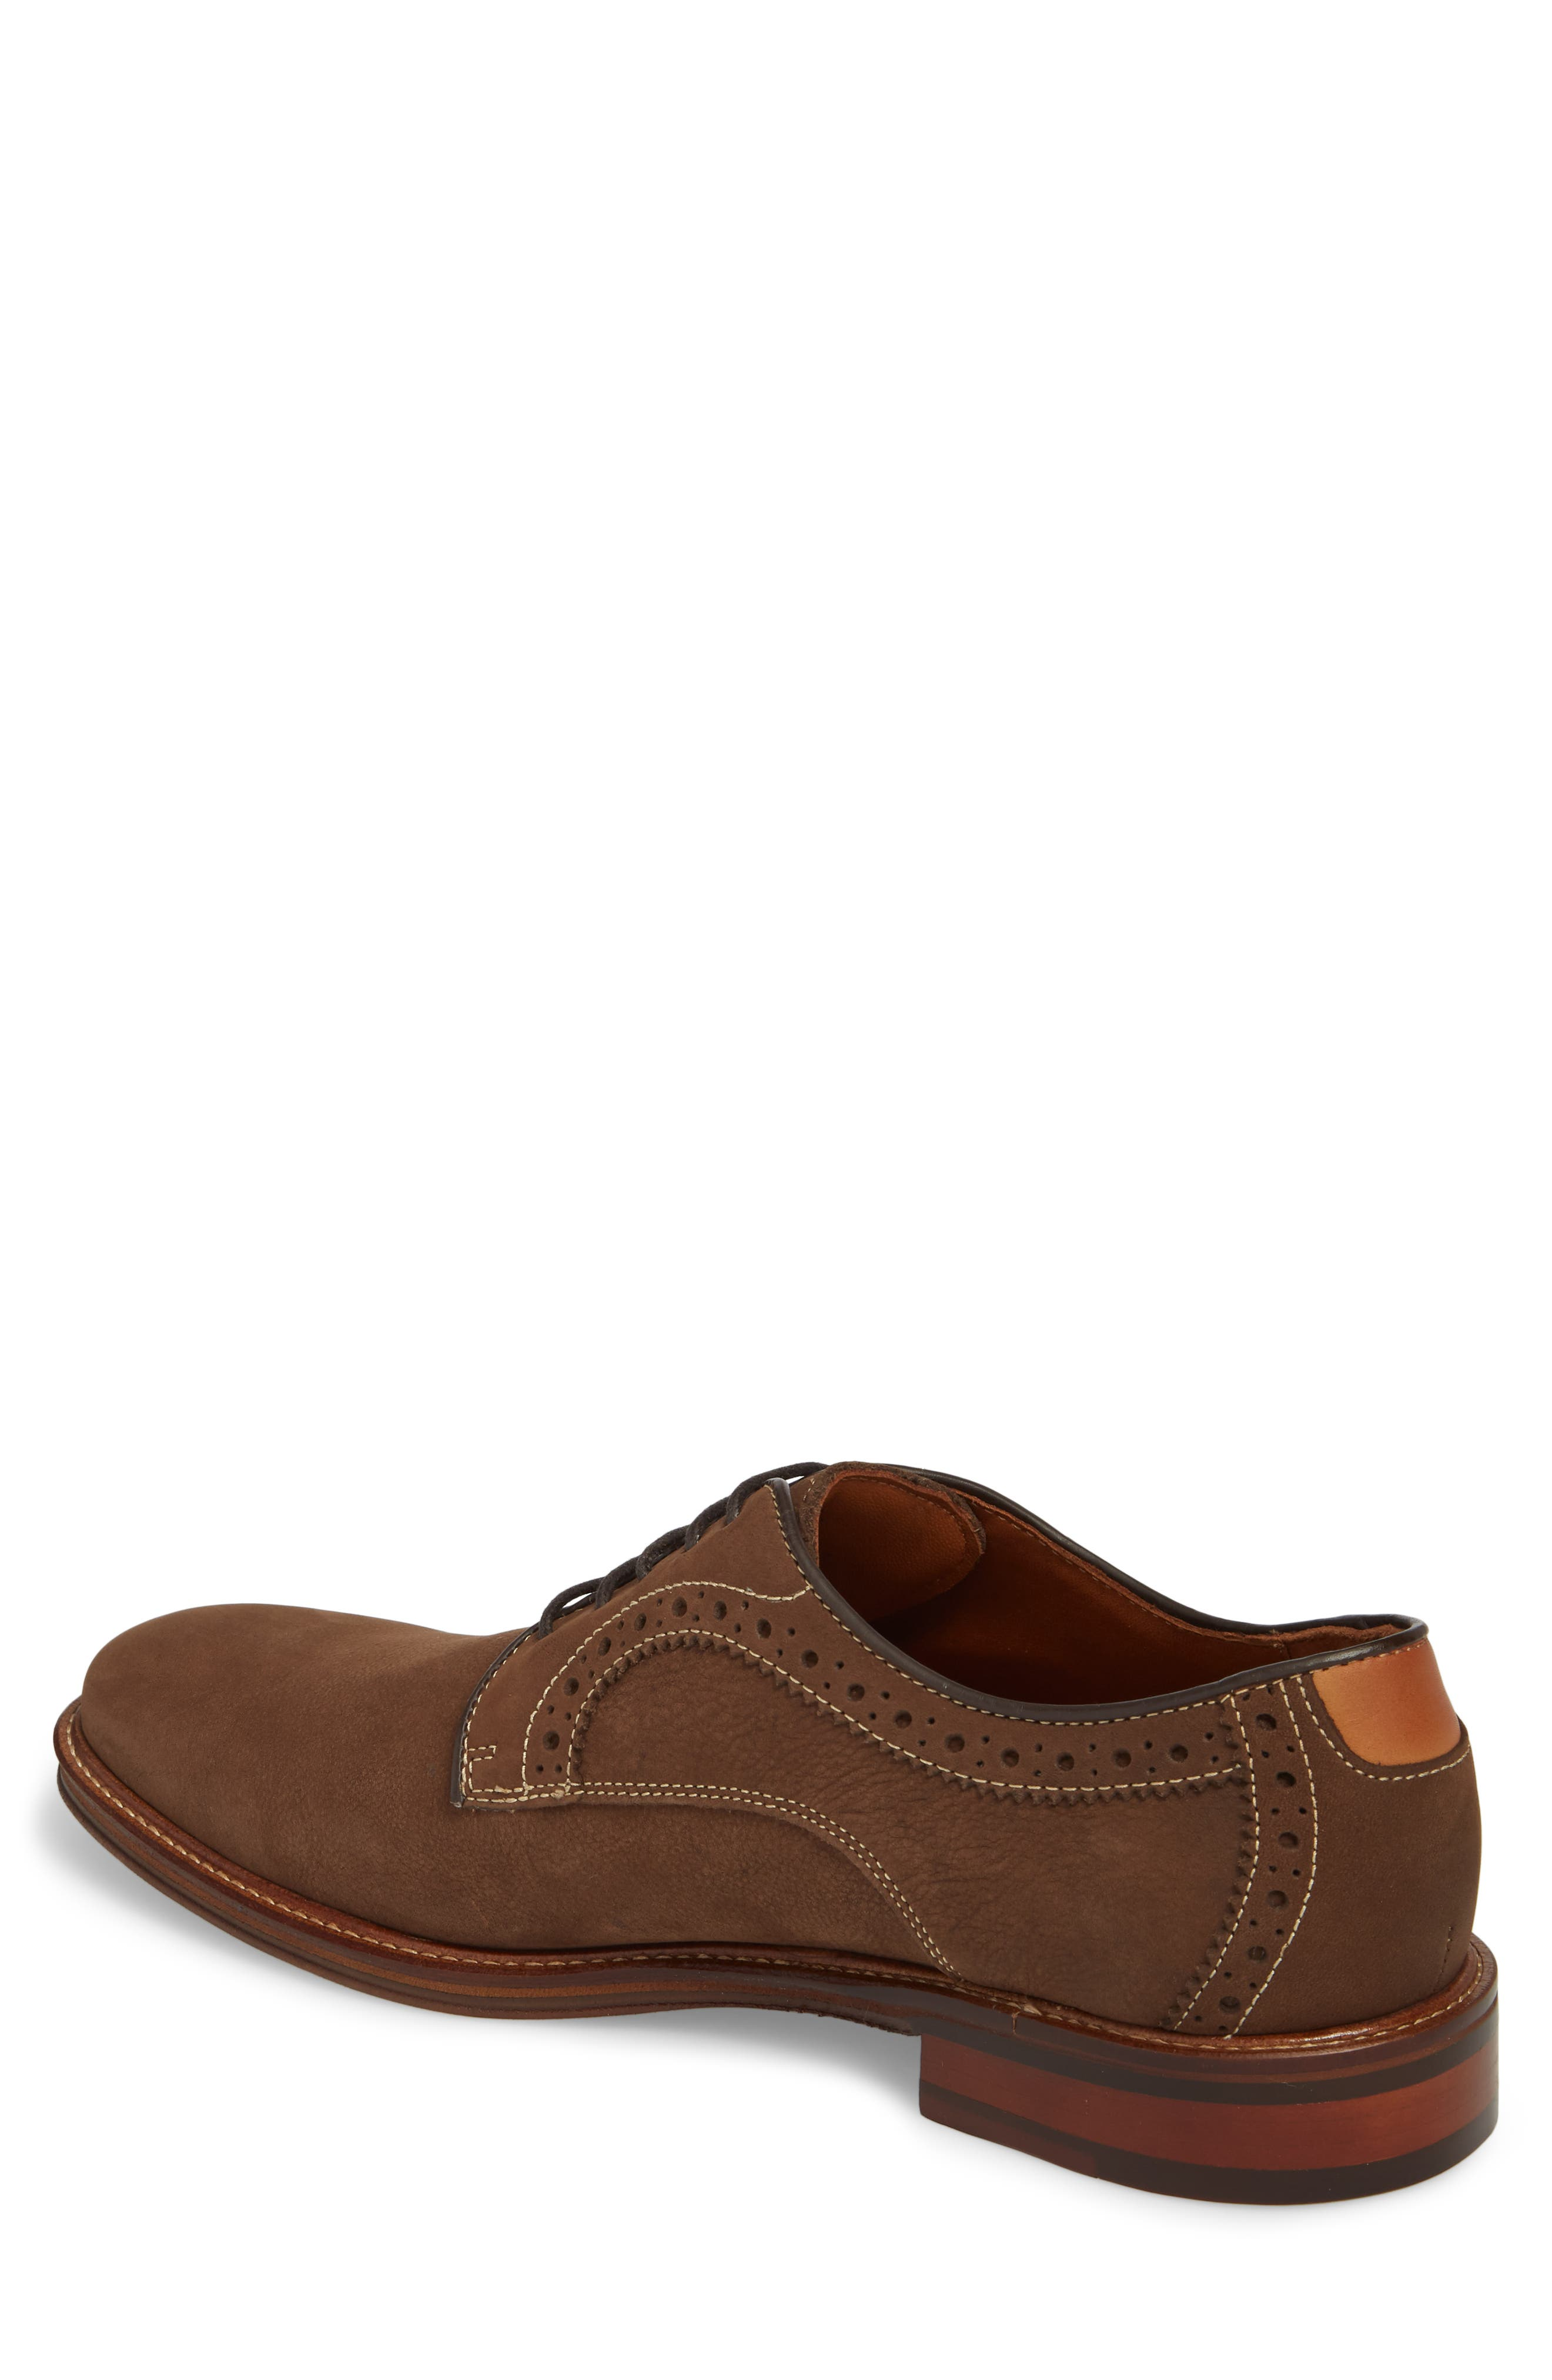 Warner Plain Toe Derby,                             Alternate thumbnail 2, color,                             BROWN NUBUCK